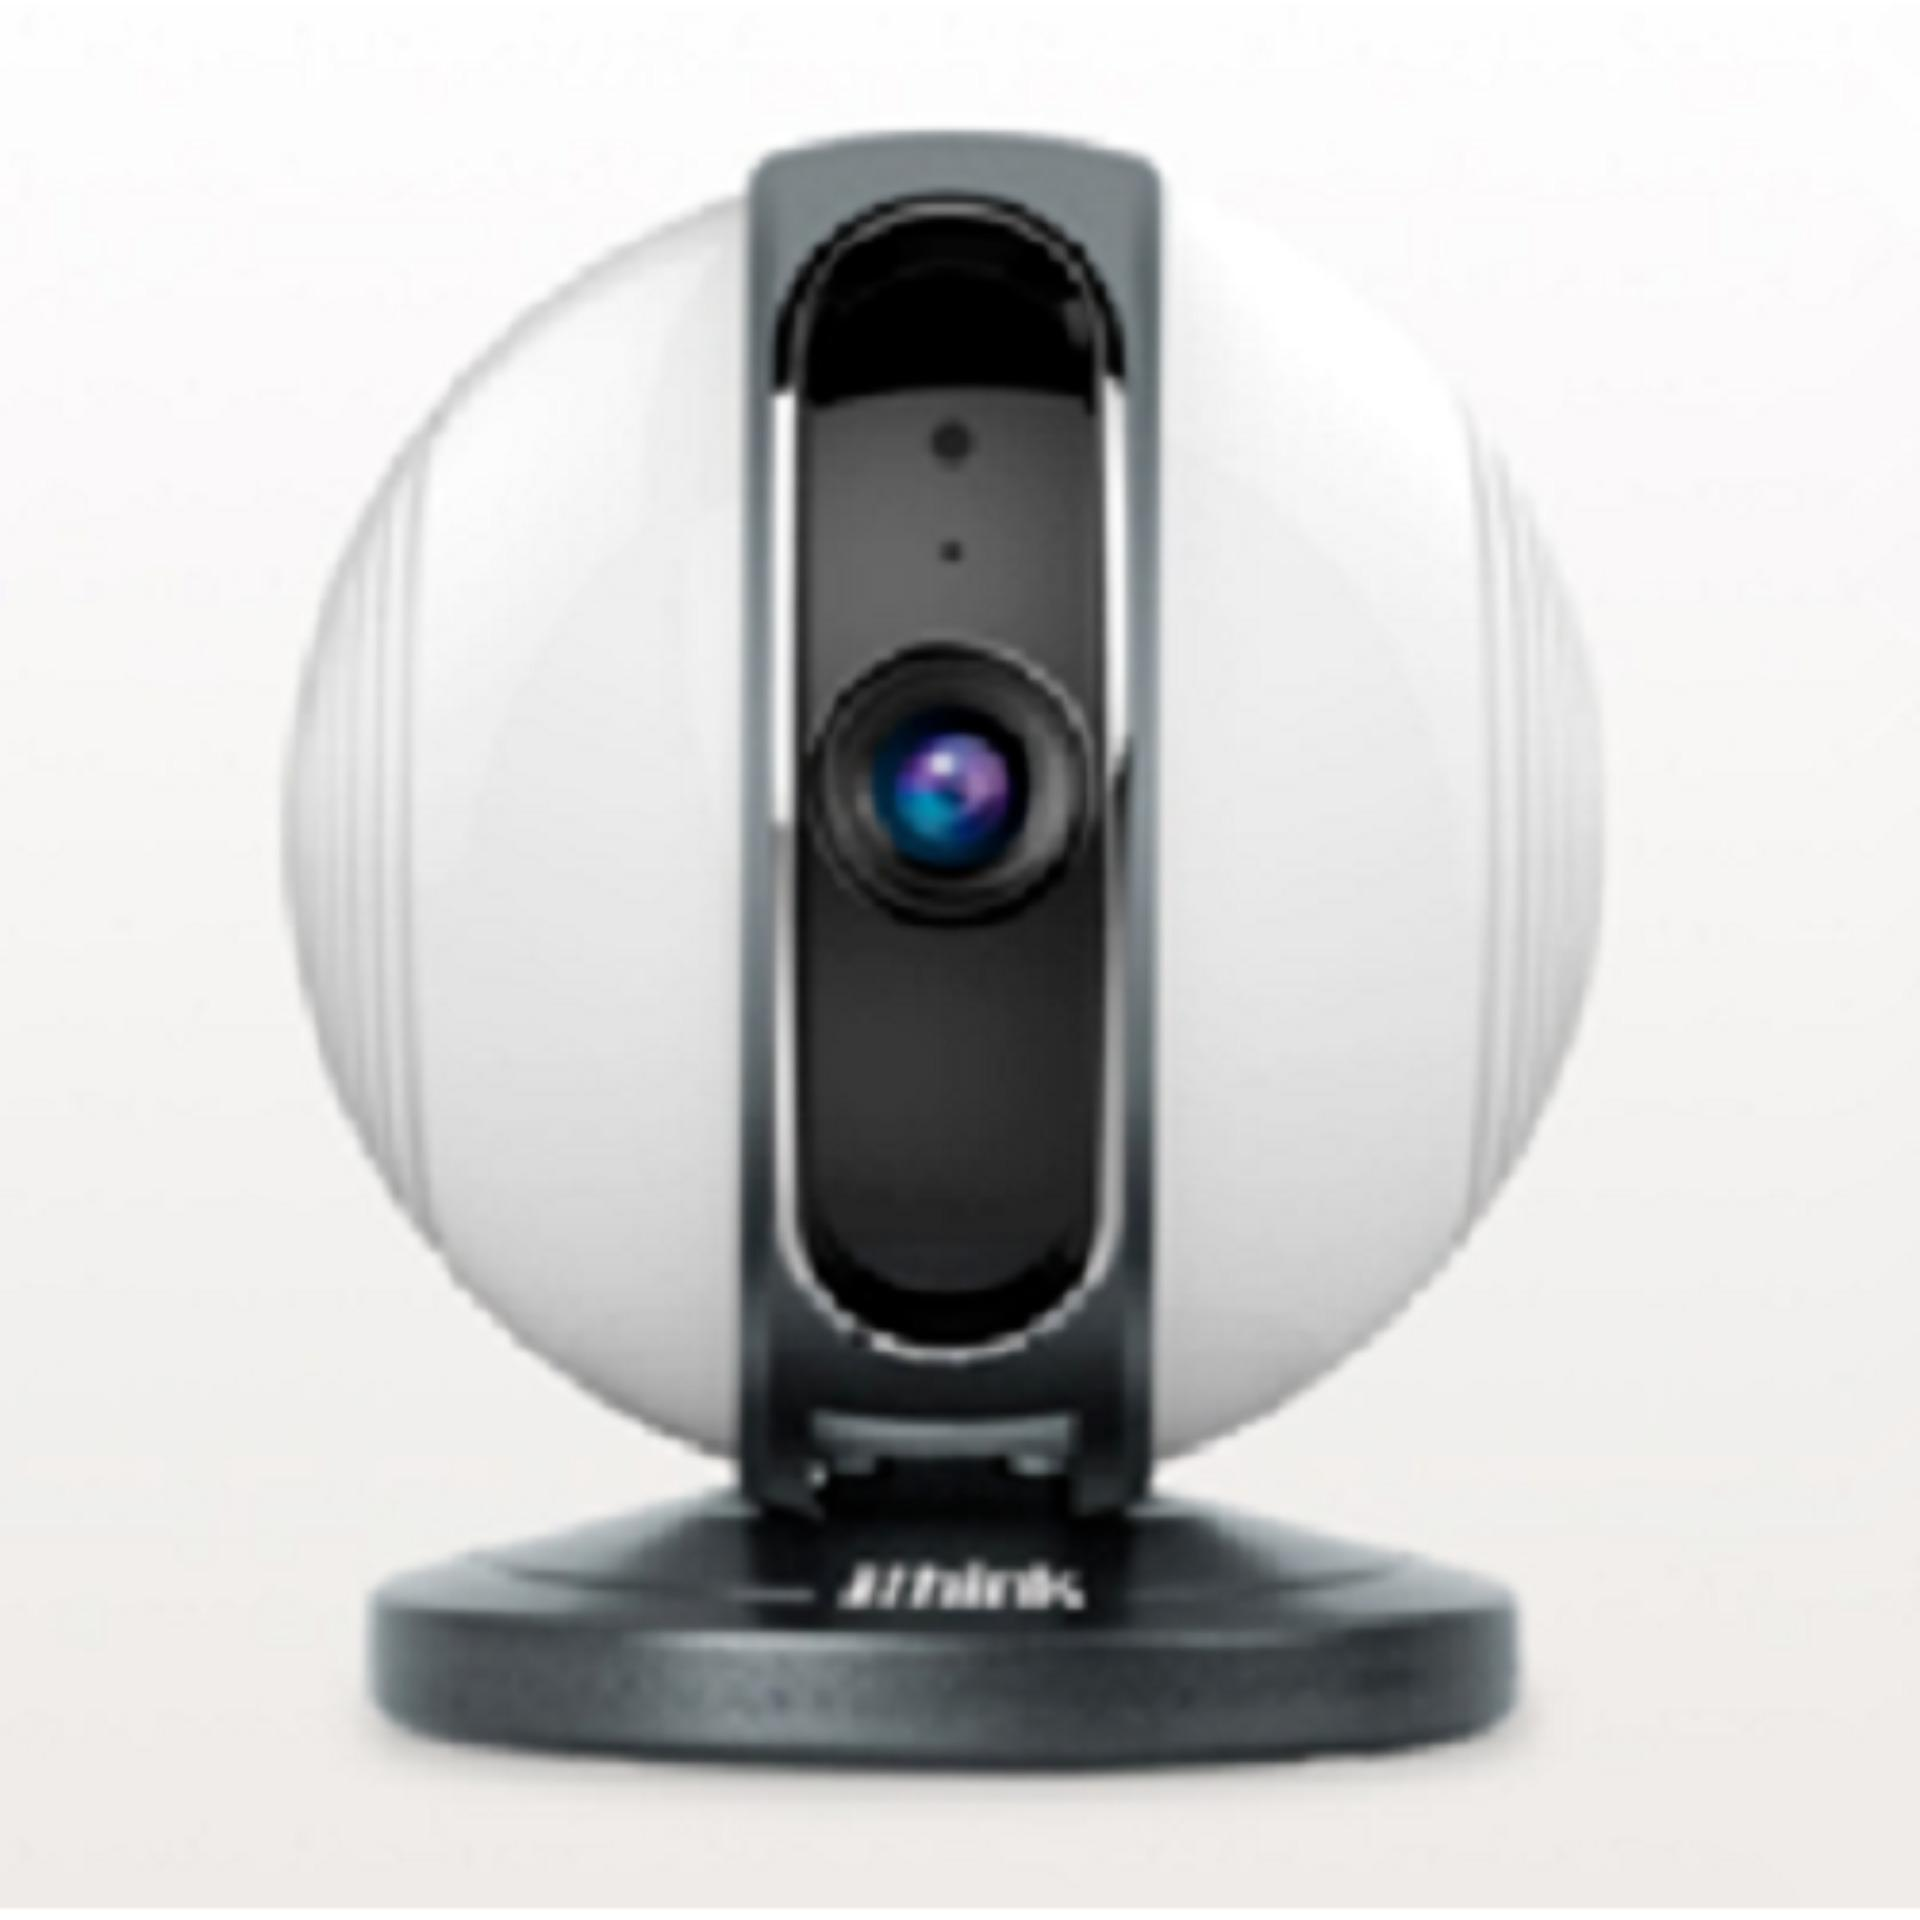 ITHINK Y2 720P HD PTZ WIFI IP CAMERA WITH MOTION DETECTION AND NIGHT VISION